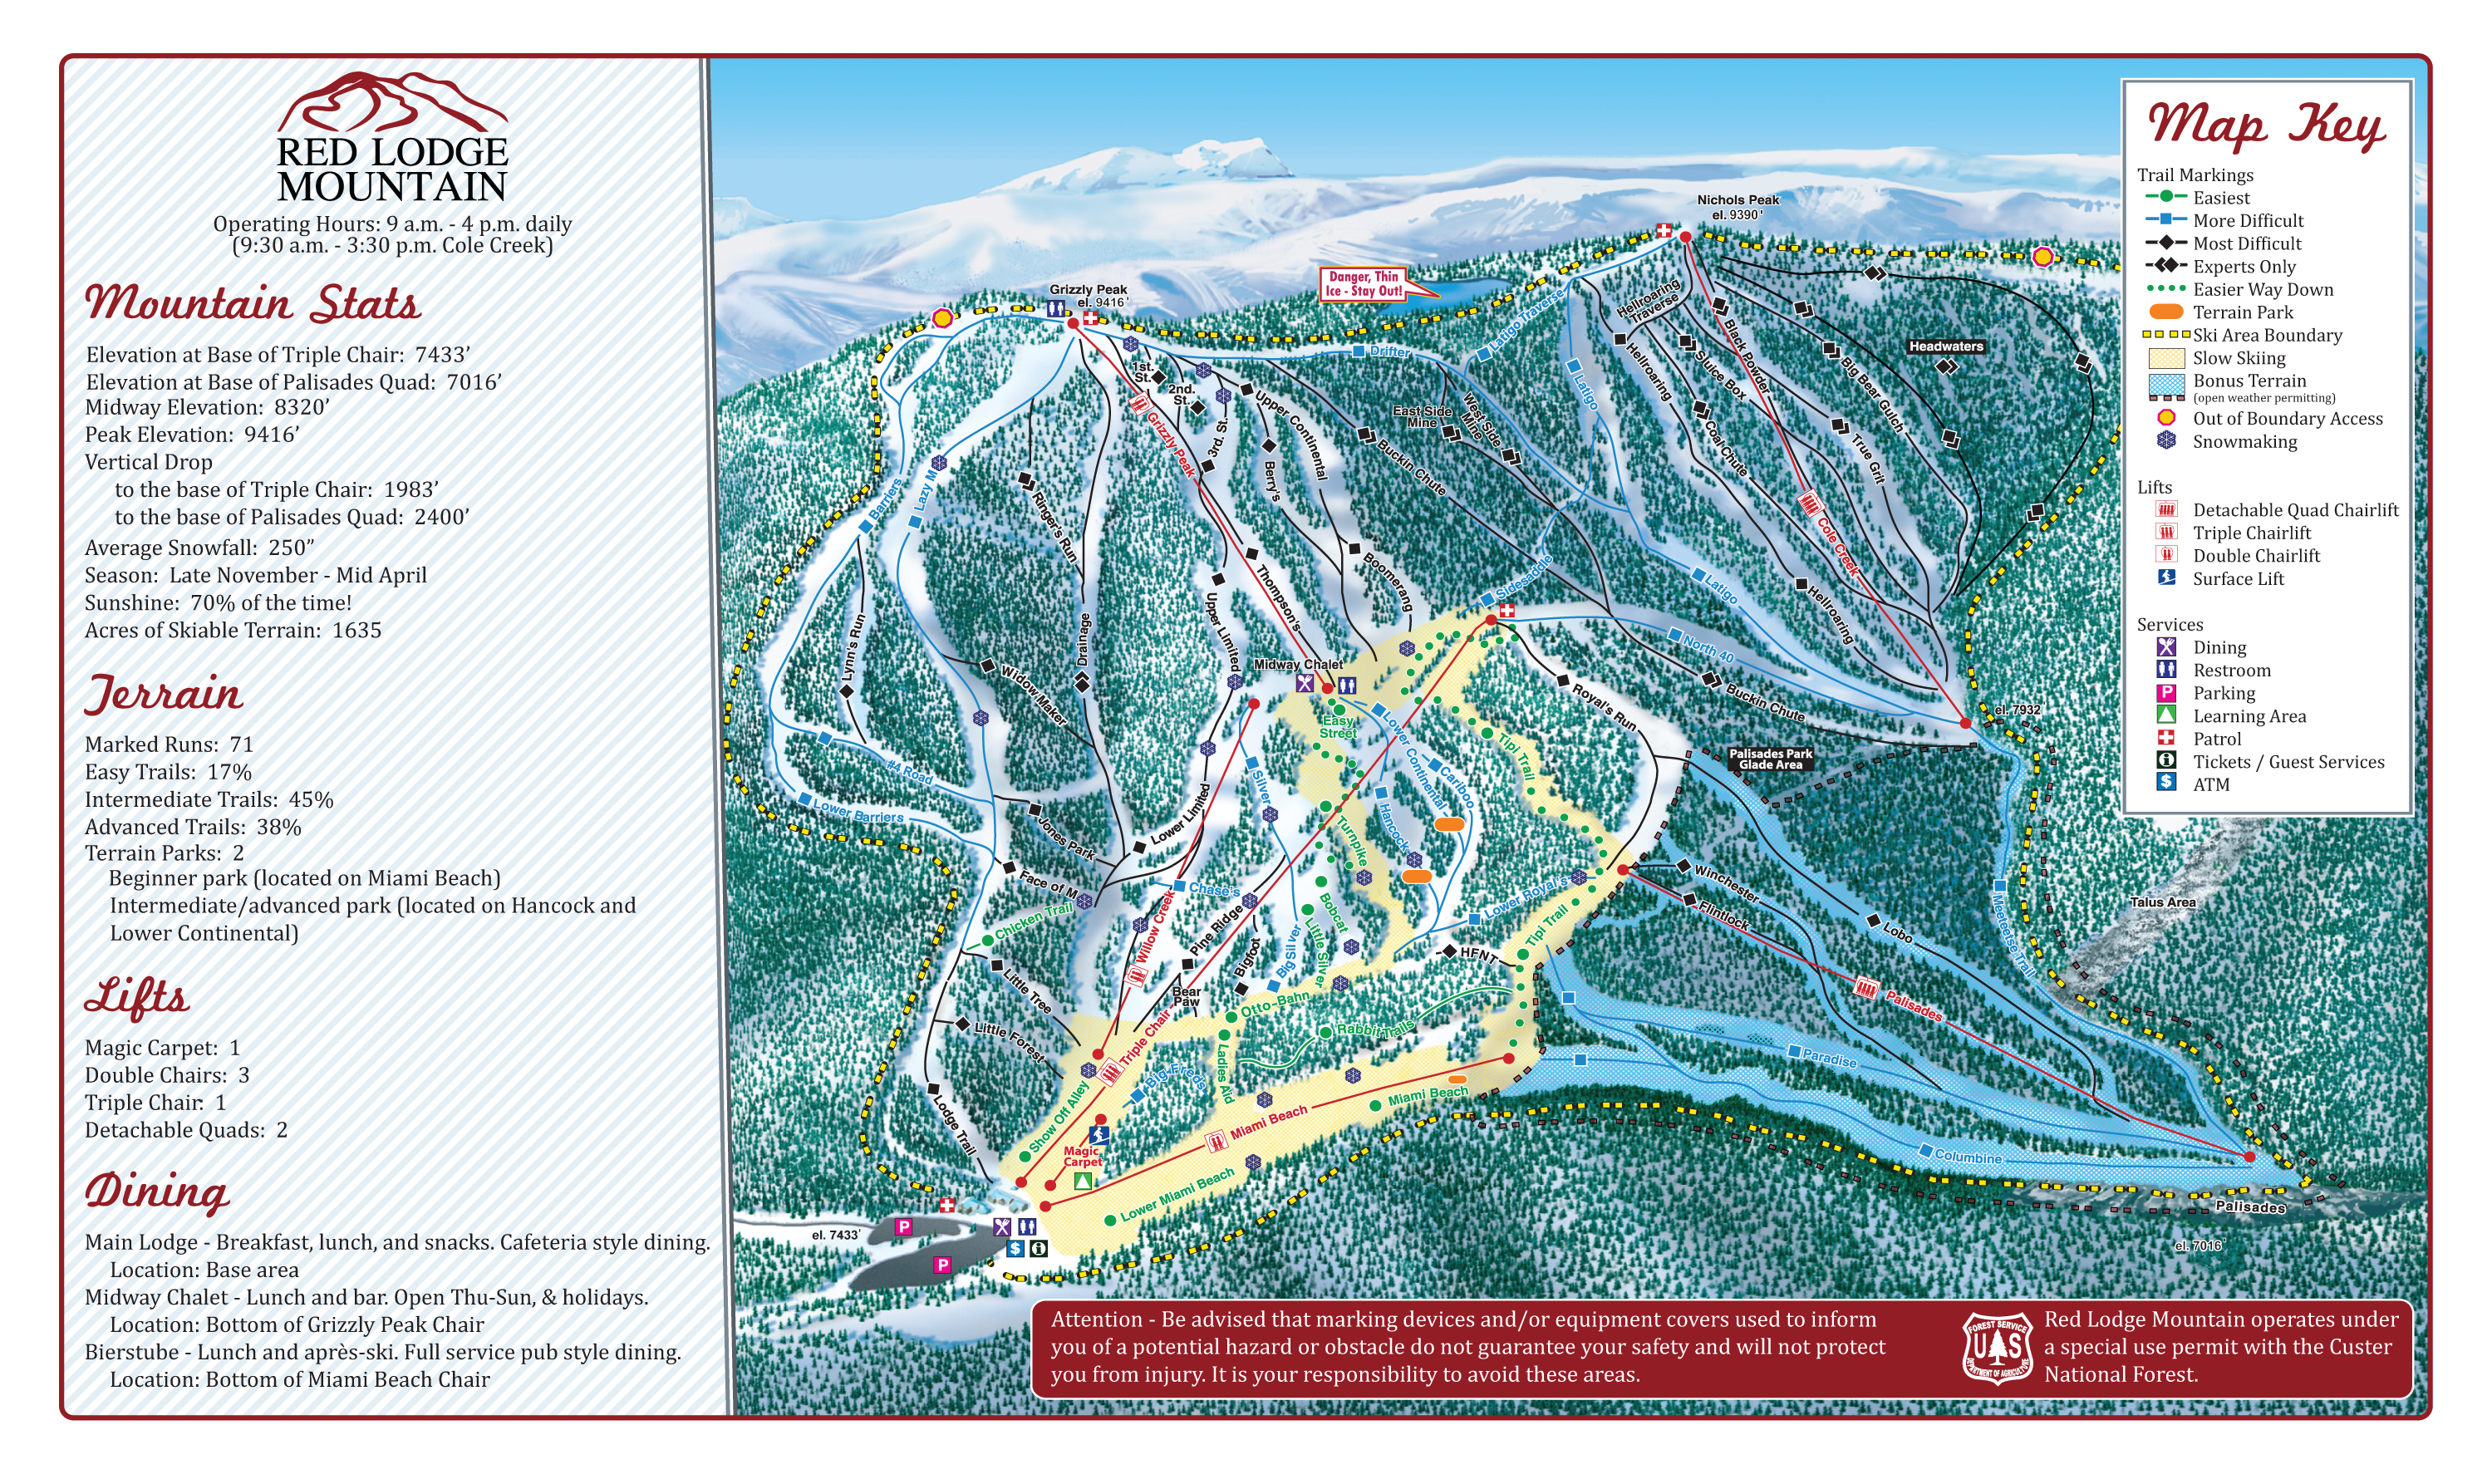 Red Lodge Mountain | Mountain Stats & Info | OnTheSnow on montana resort towns, mt. snow trail map, montana average temperatures by month, mt. rose ski area map, great divide ski map, montana ski areas, montana hotels map, montana ski towns, new york city tourist attractions map, mt. baldy ski trail map, montana whitefish mountain resort, tremblant canada map, red lodge ski resort map, mt spokane ski map, montana road conditions map webcams, red lodge trail map, resorts in montana map, montana snotel data, montana scenic drives map, montana hiking map,